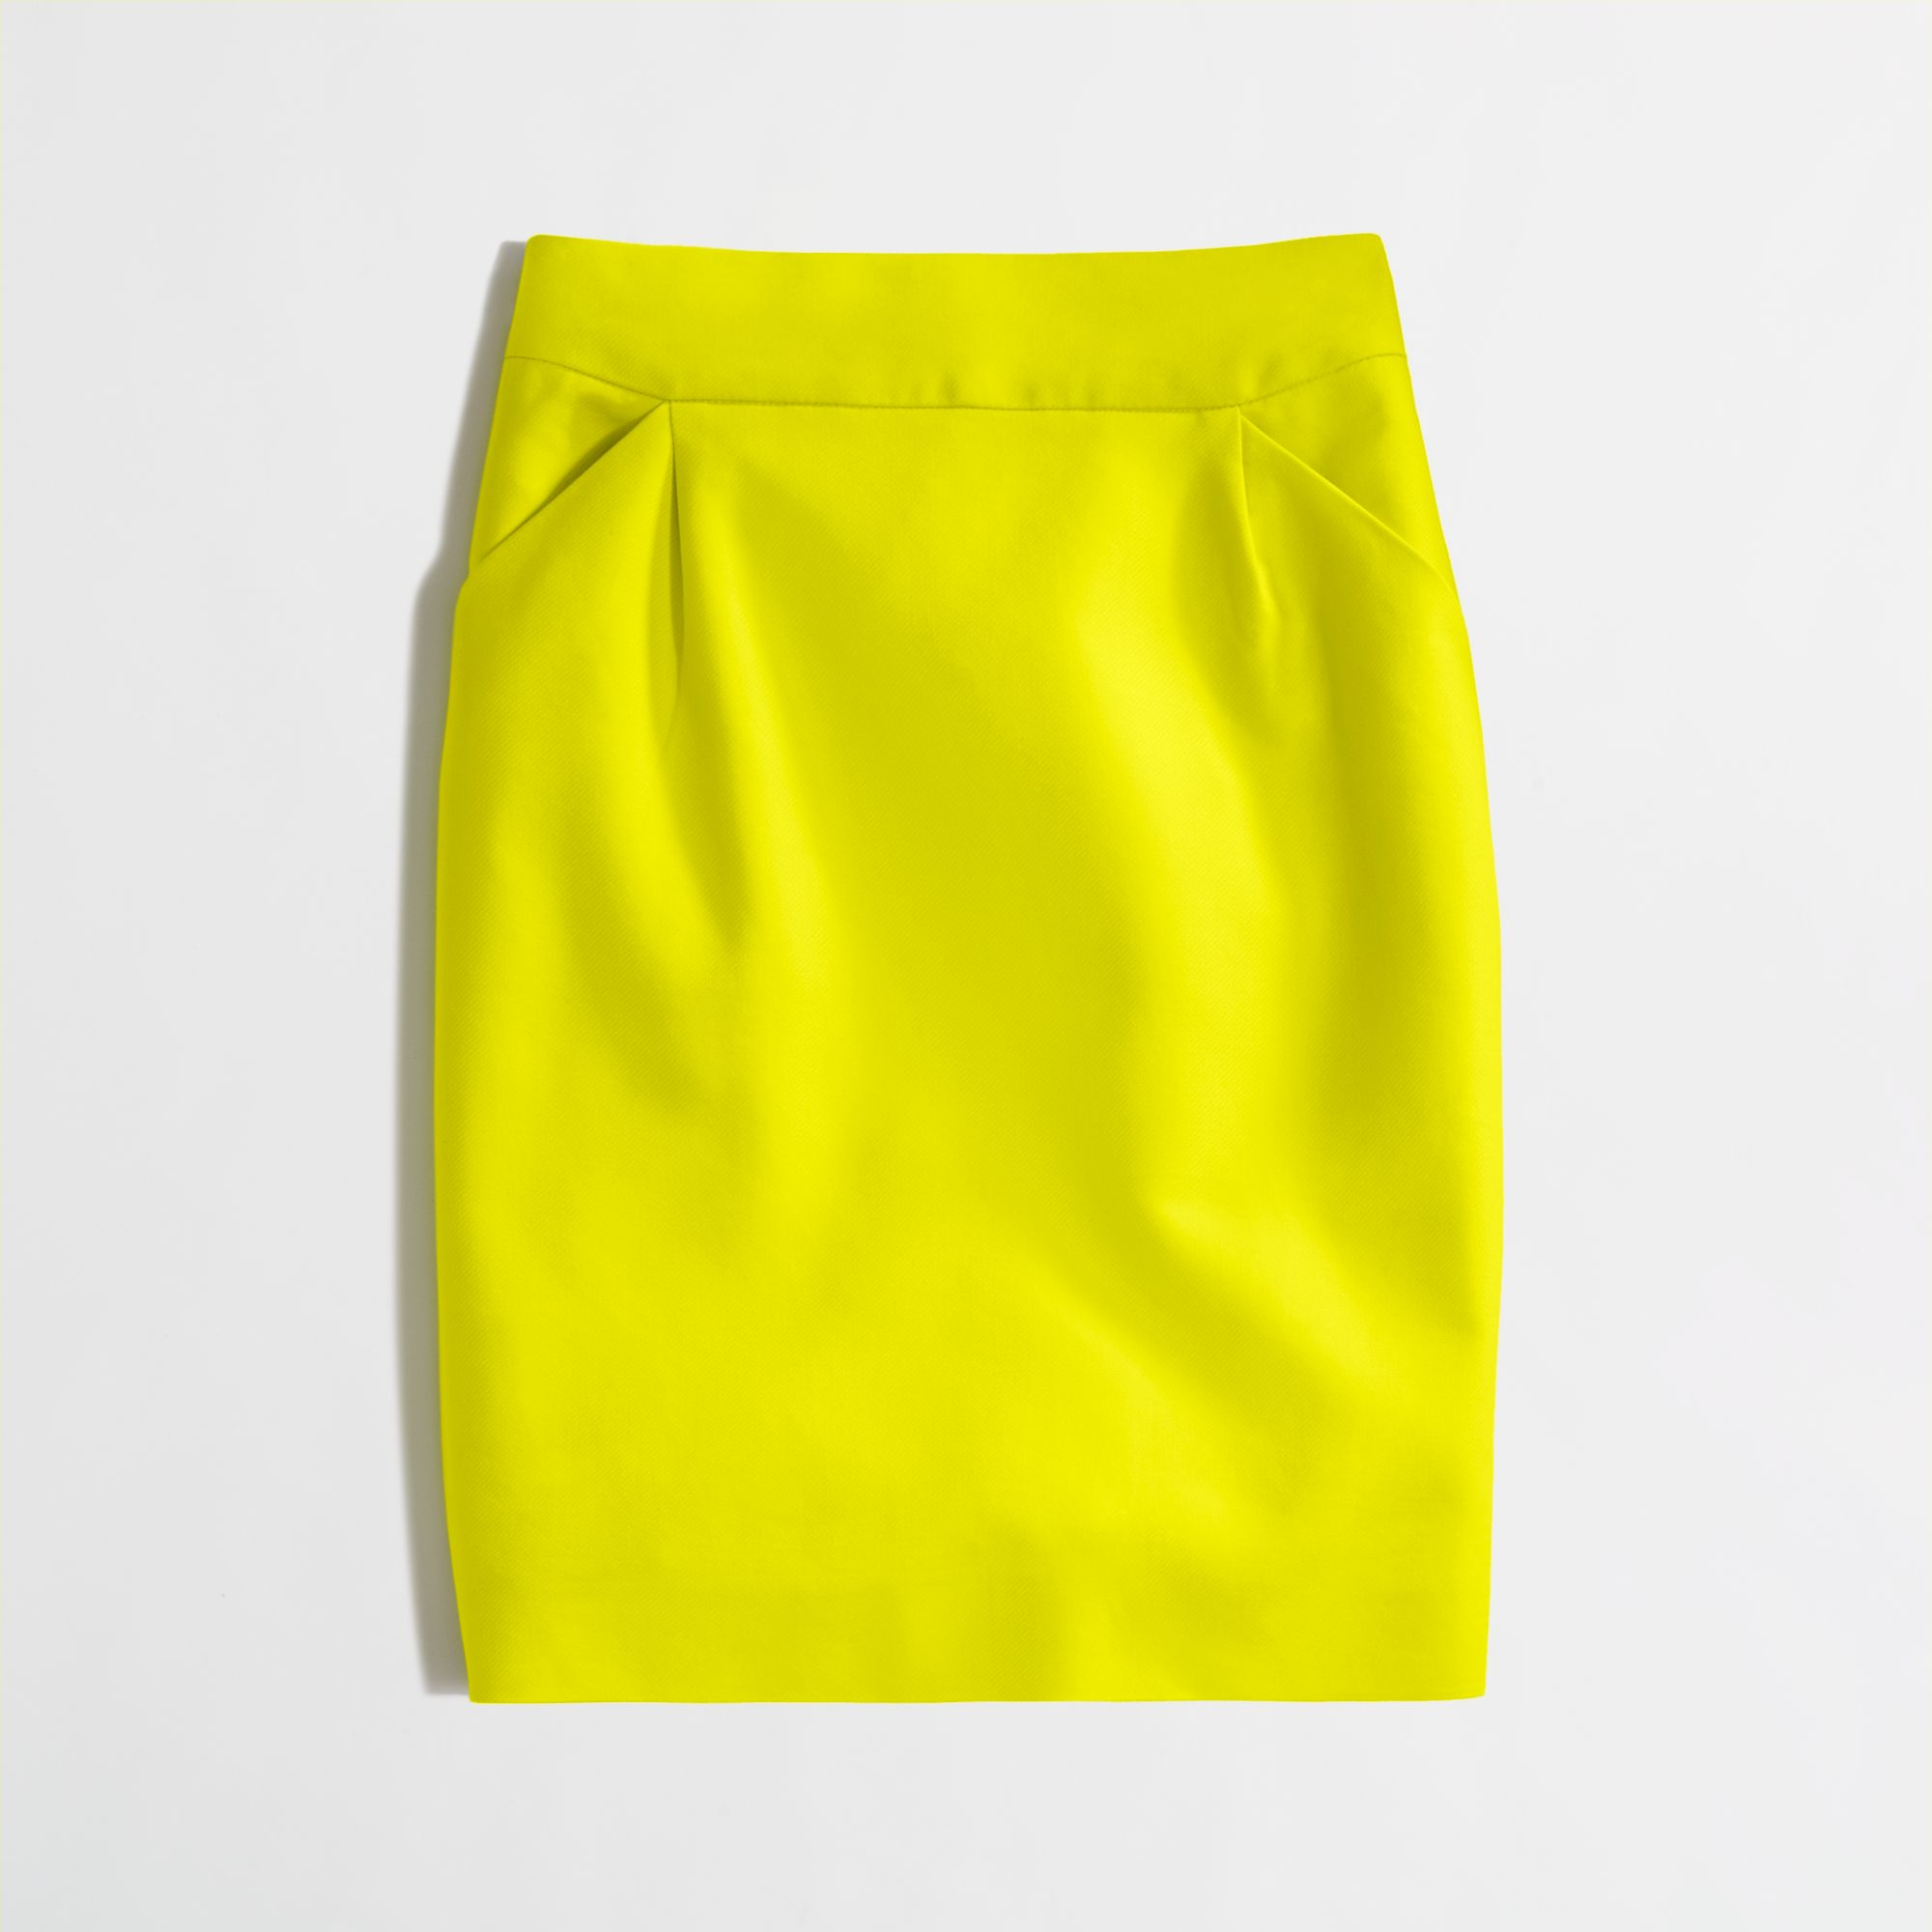 1255de93a96d J.Crew Factory Pencil Skirt in Doubleserge Cotton in Yellow - Lyst